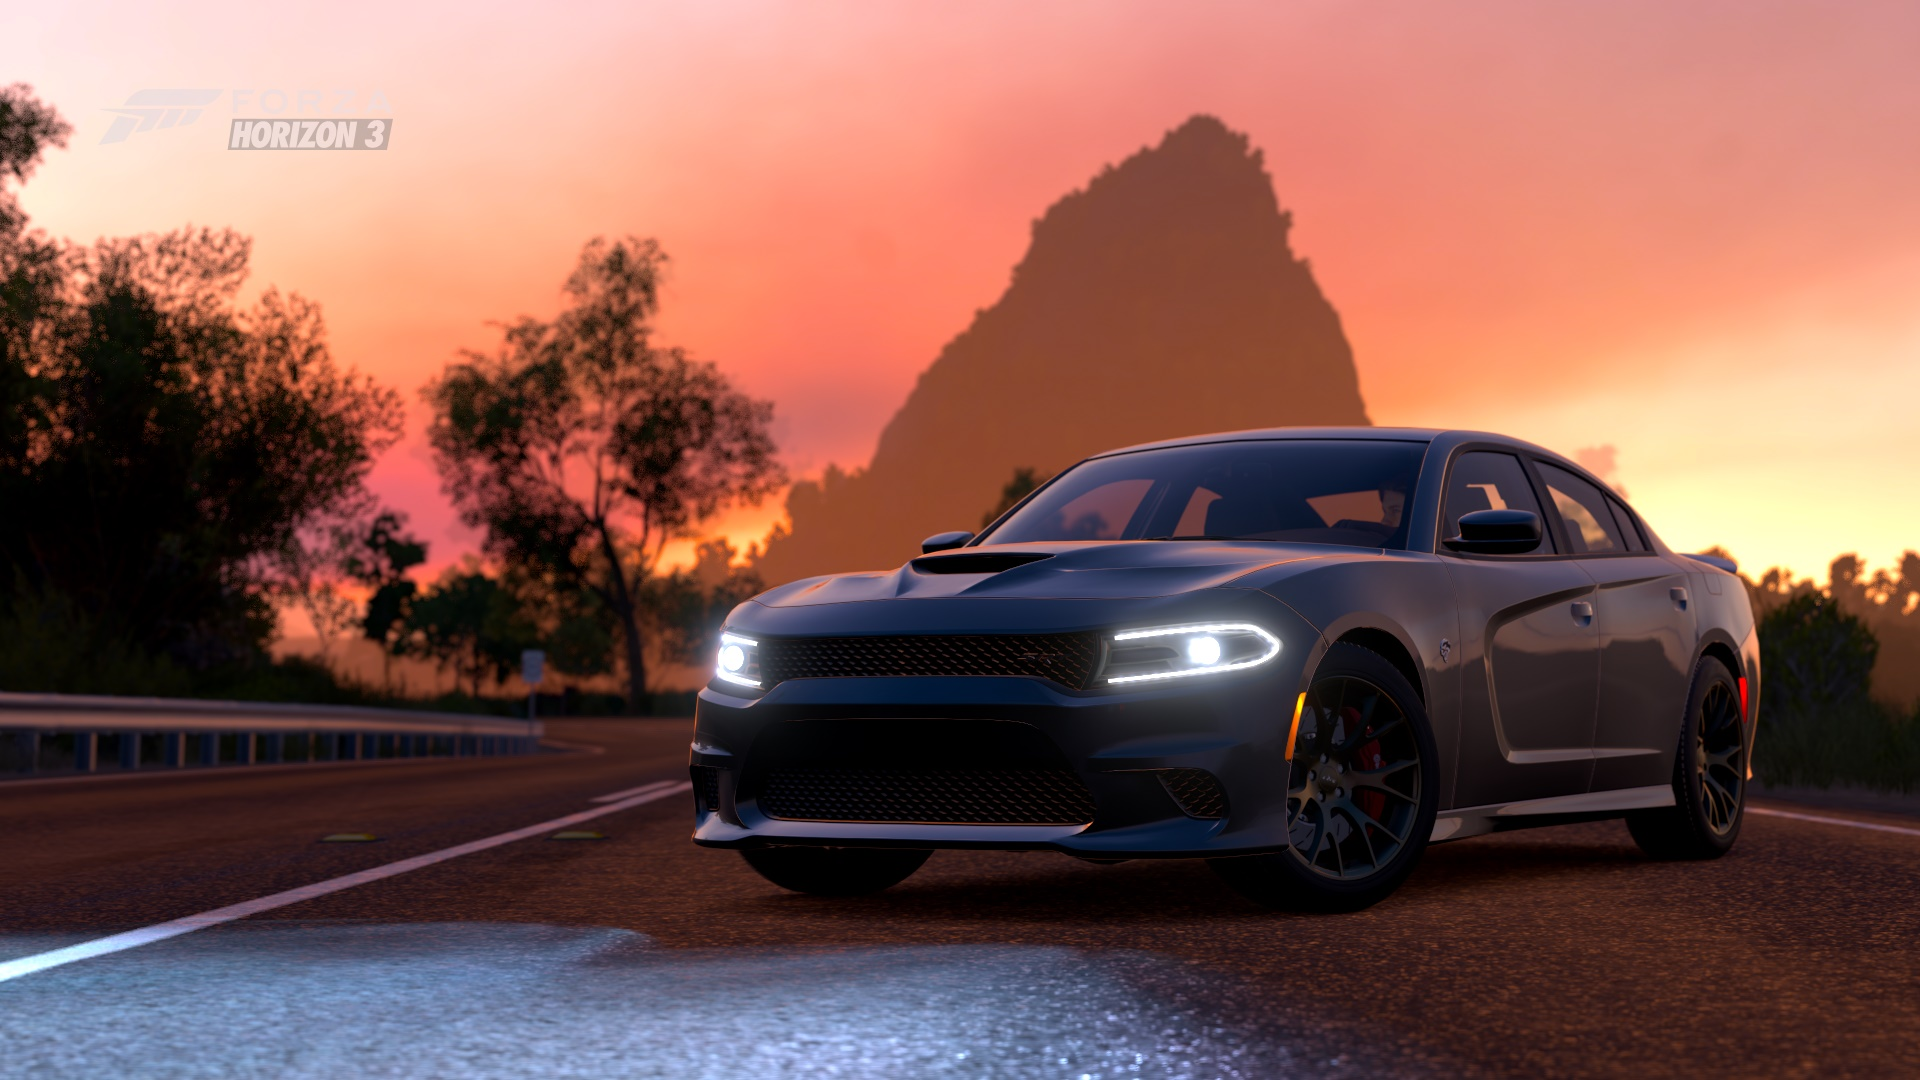 2015 dodge charger srt hellcat hd wallpaper | background image